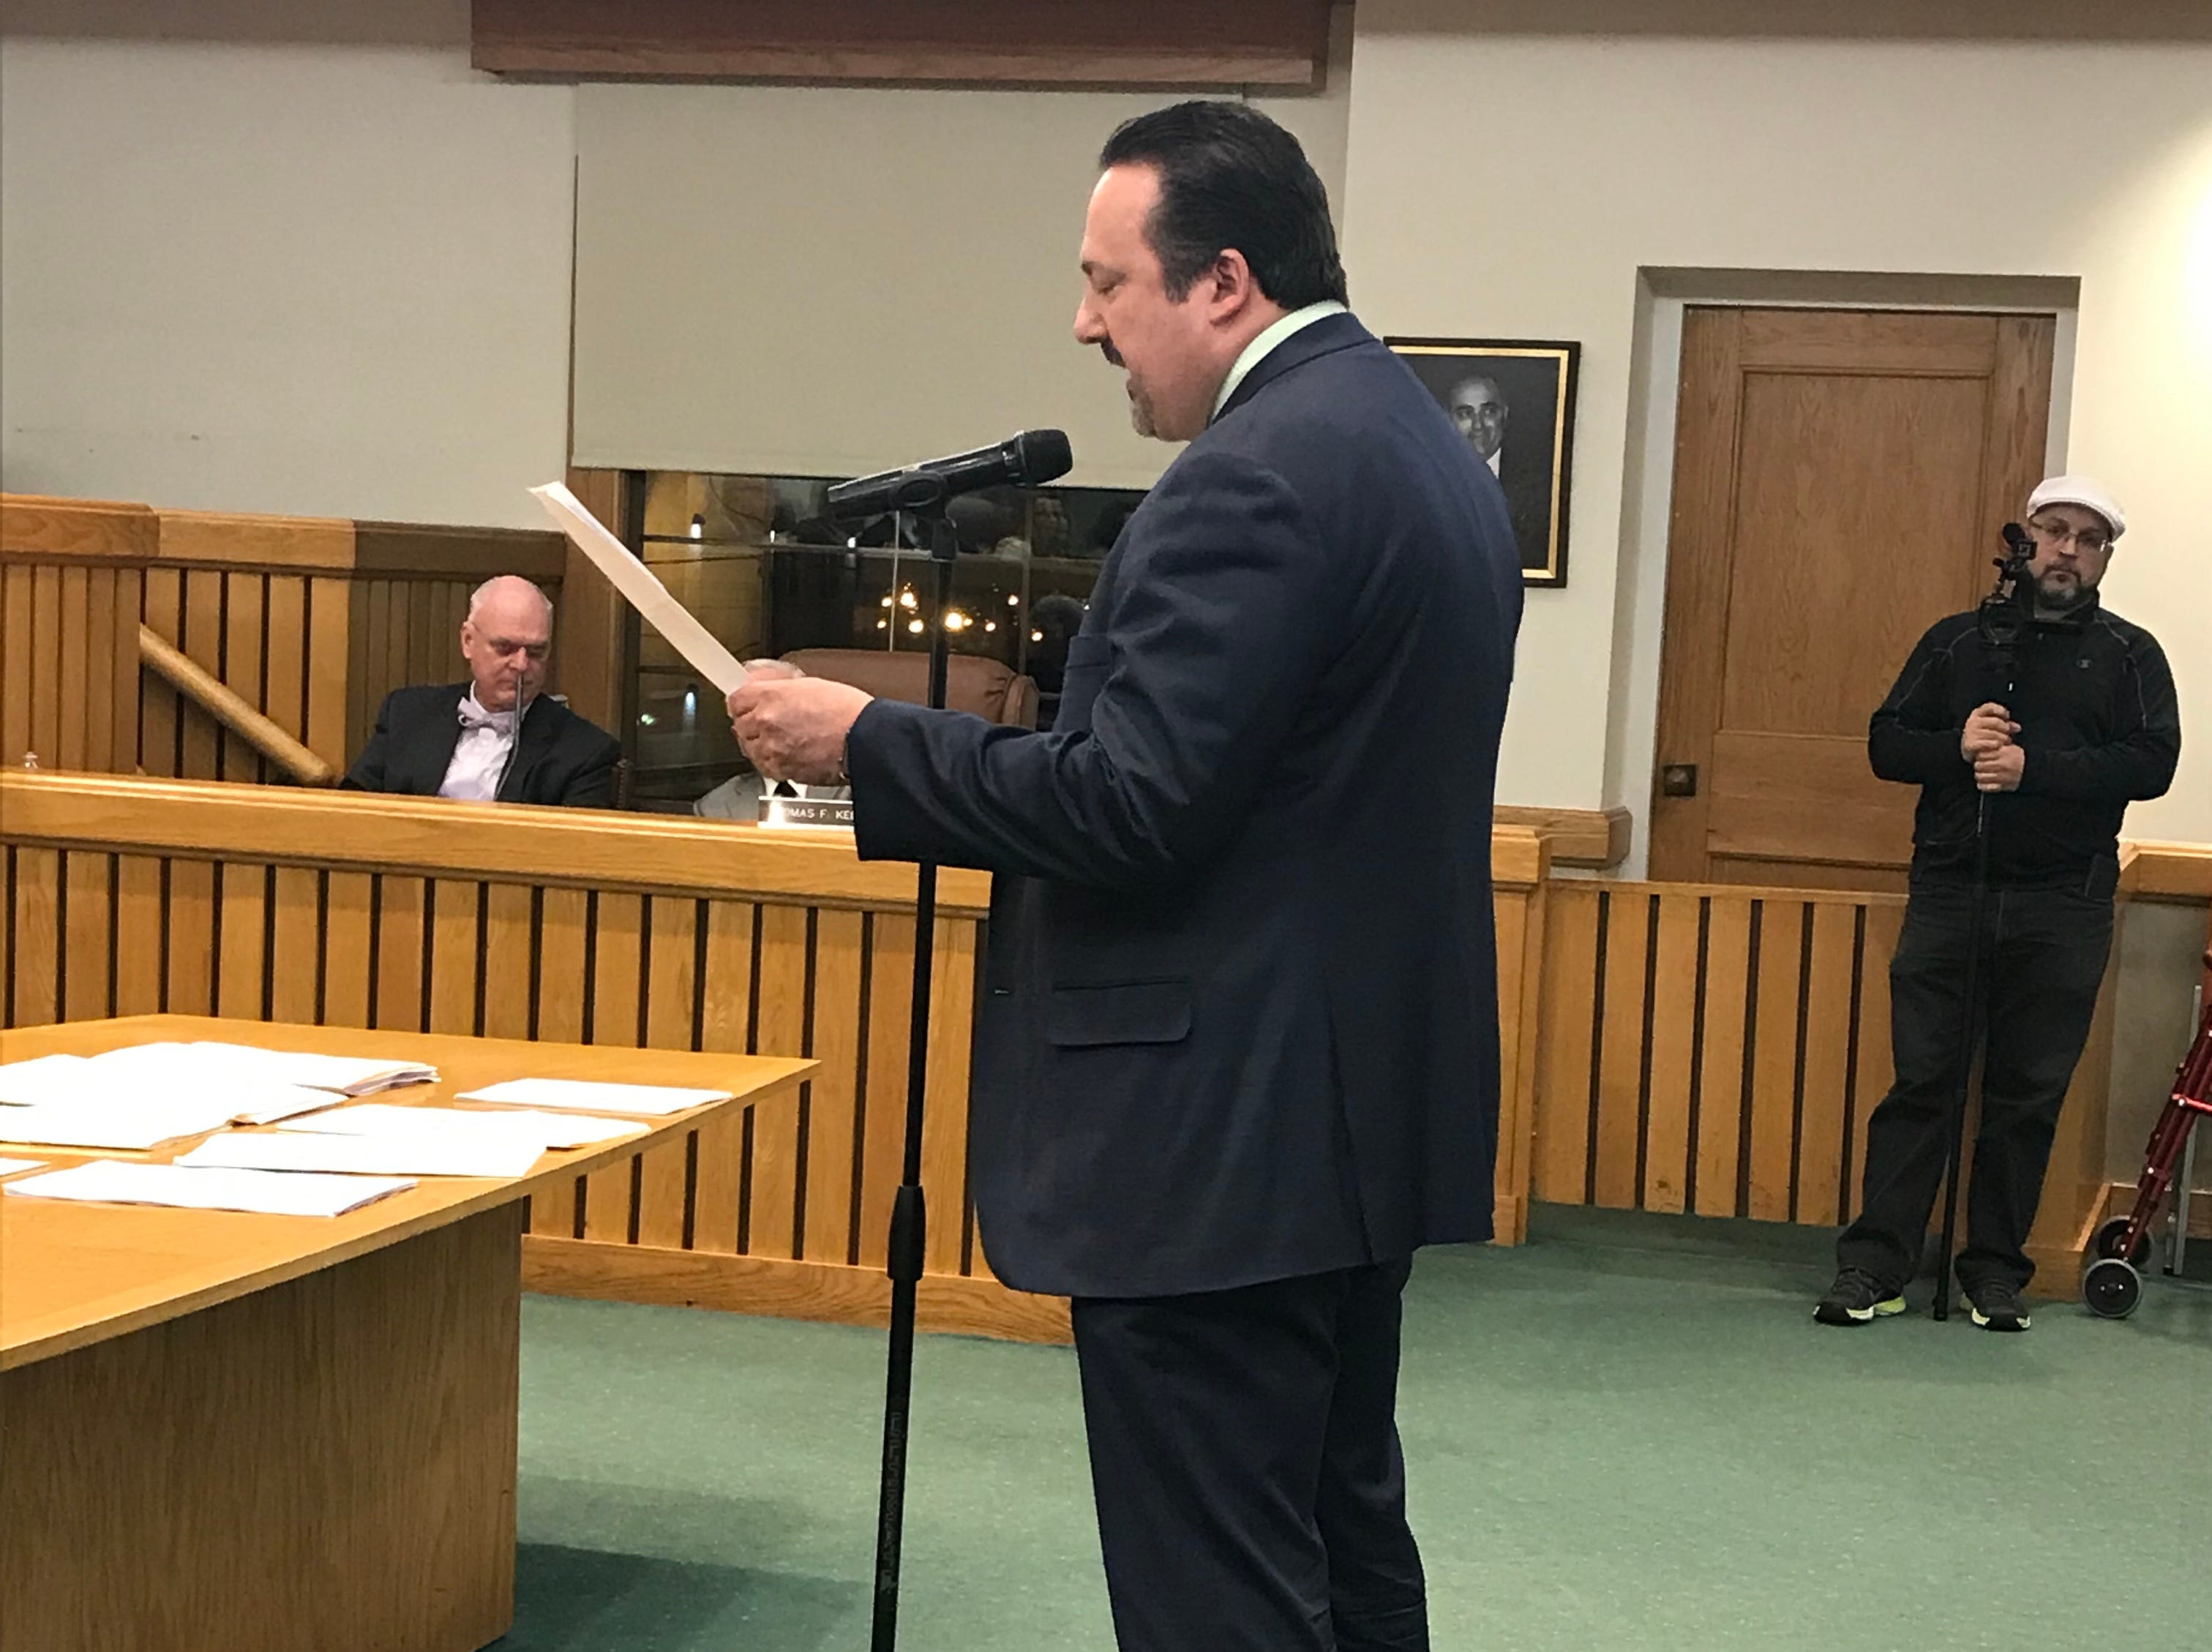 Philip Brilliant, president of Congregation B'nai Israel in Toms River, speaks to the Township Council